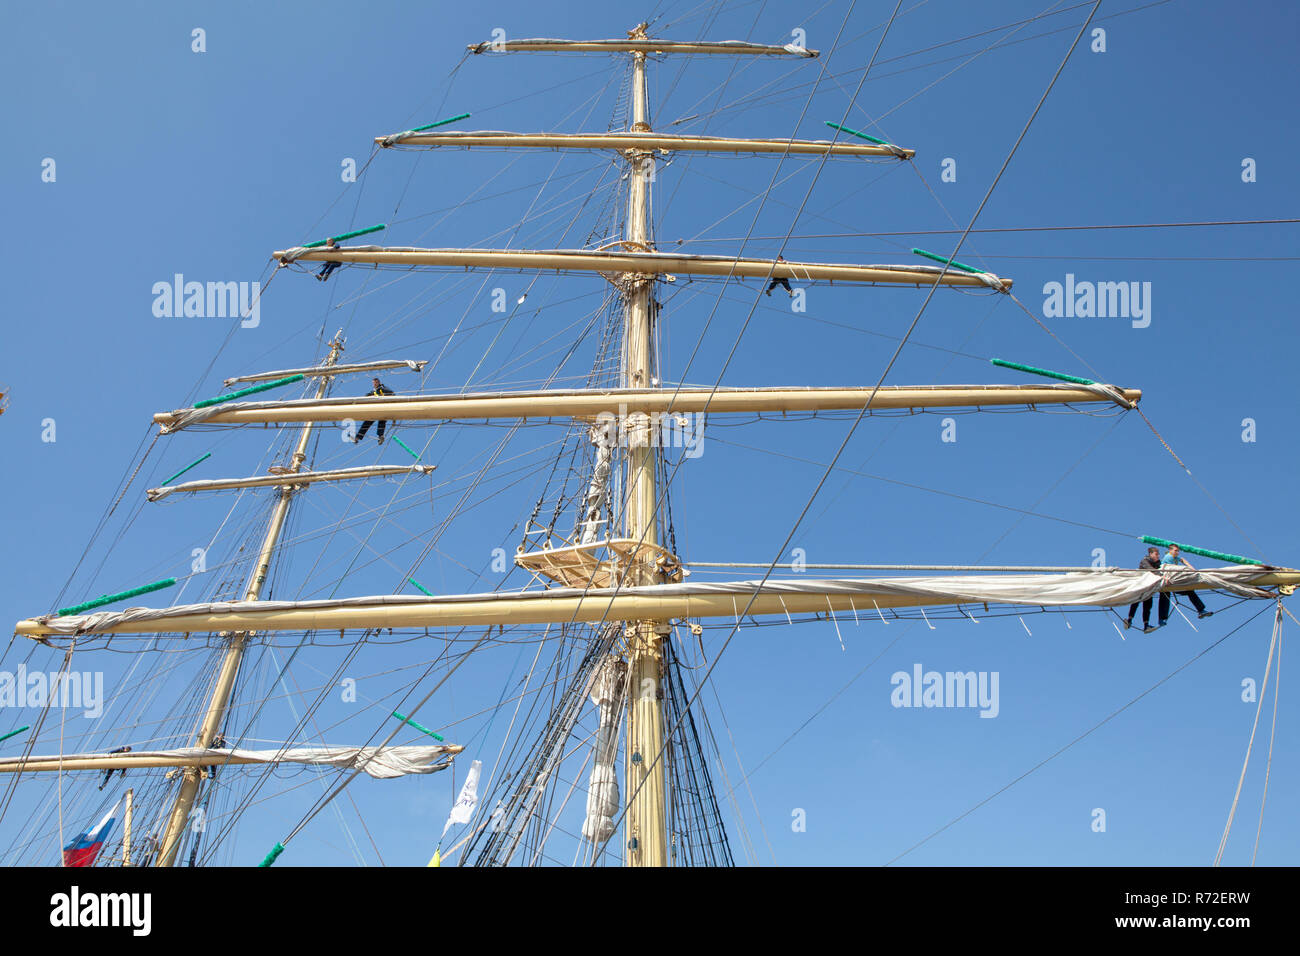 Crews working in the rigging of two tall ships during the 2018 Tall Ships Race in Sunderland - Stock Image